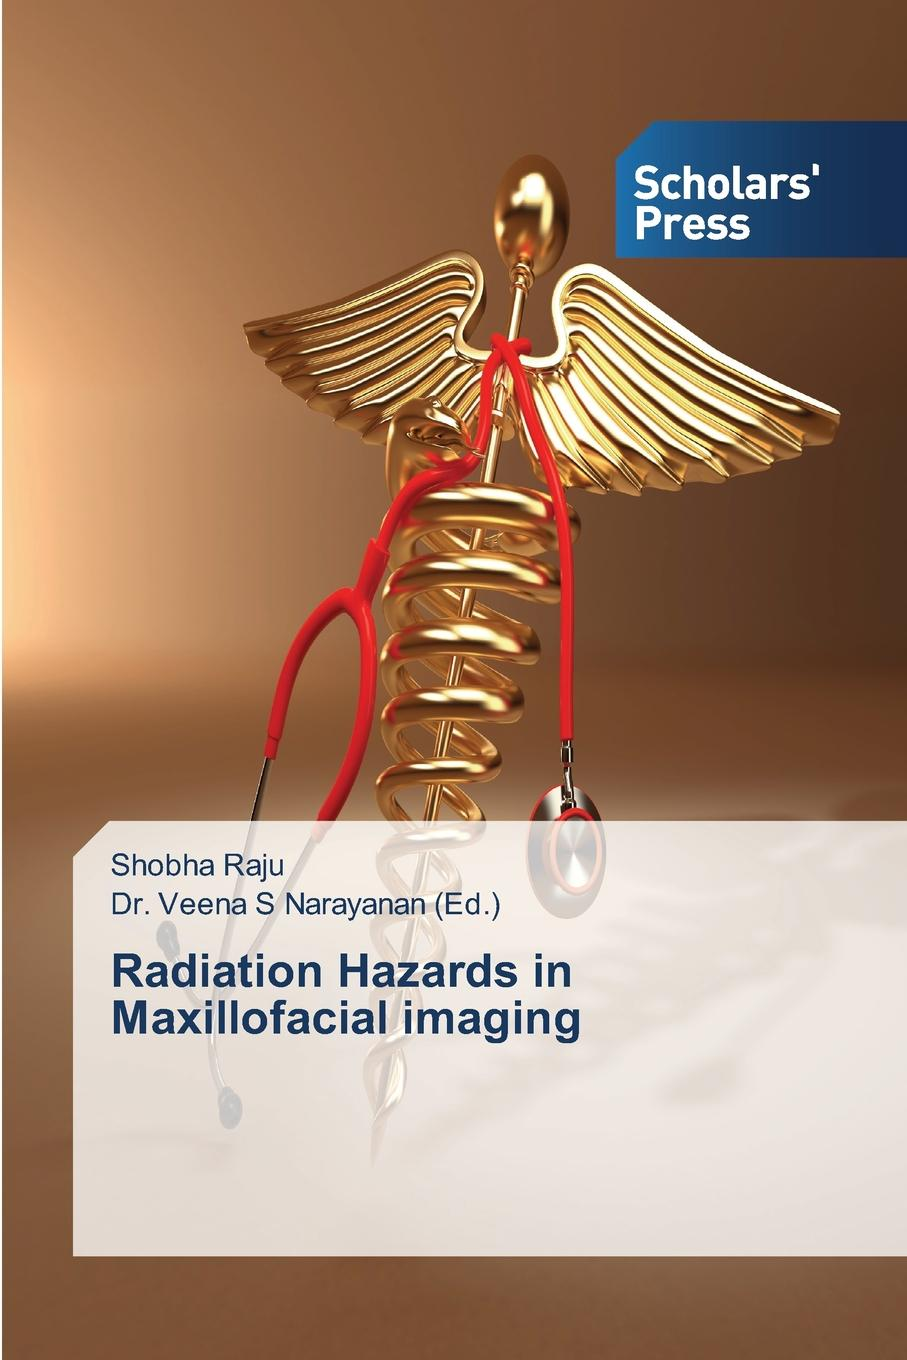 Raju Shobha Radiation Hazards in Maxillofacial imaging kimberly paffett s radiation biology of medical imaging